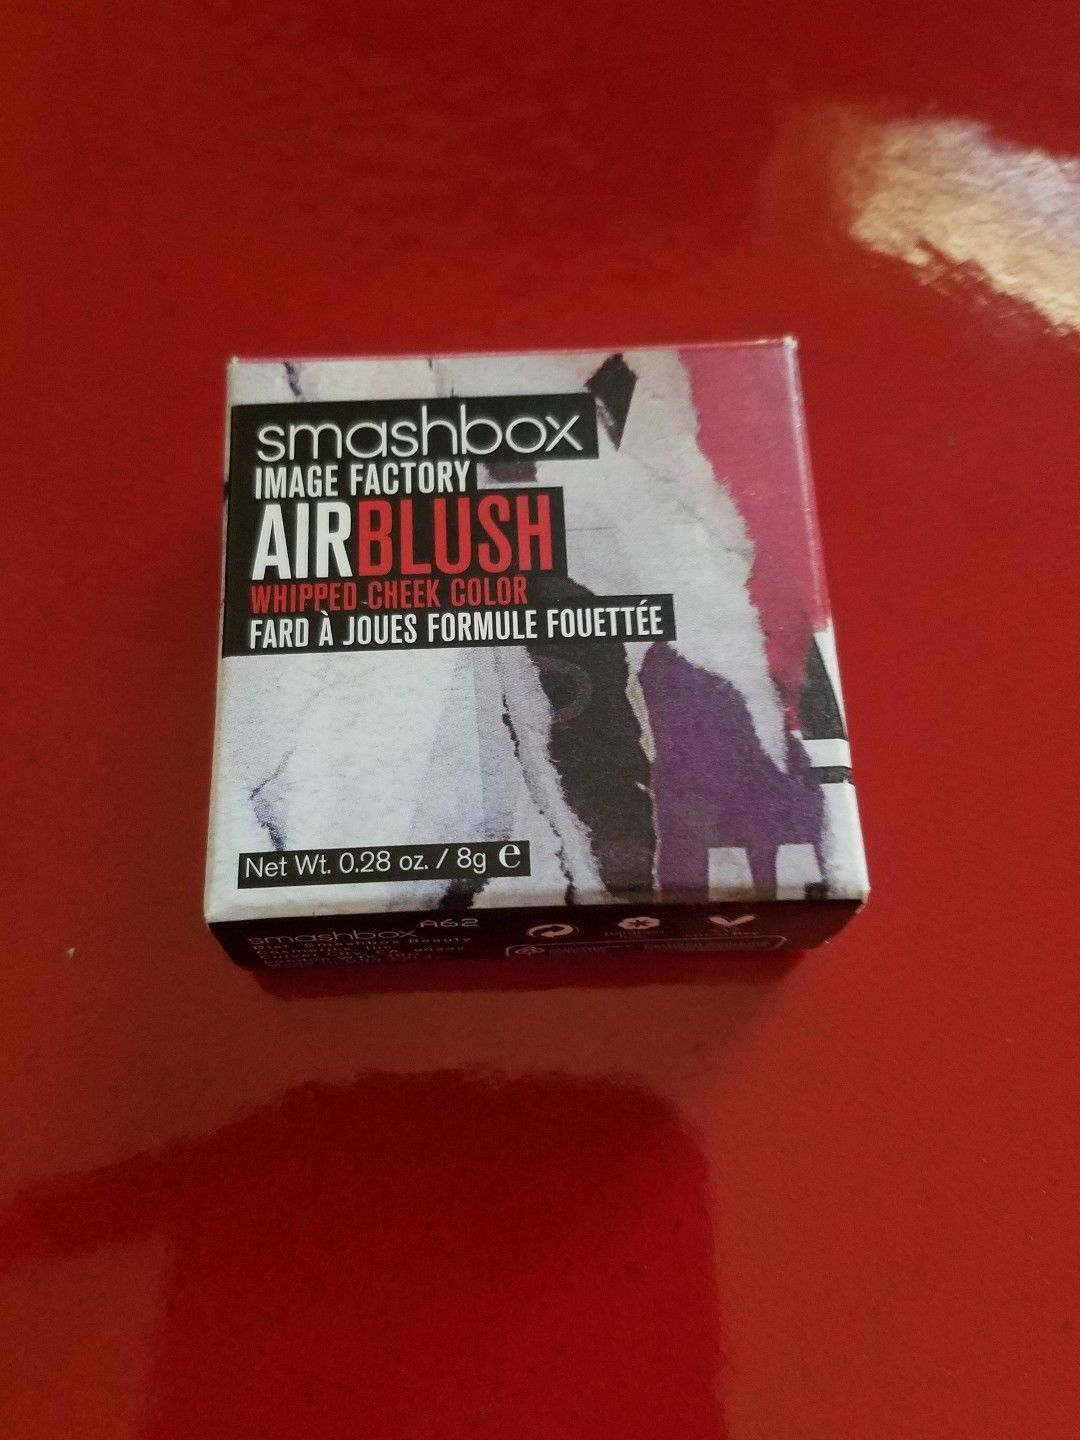 SMASHBOX IMAGE FACTORY AIRBLUSH WHIPPED CHEEK COLOR - Dusty Rose - Authentic - $24.95